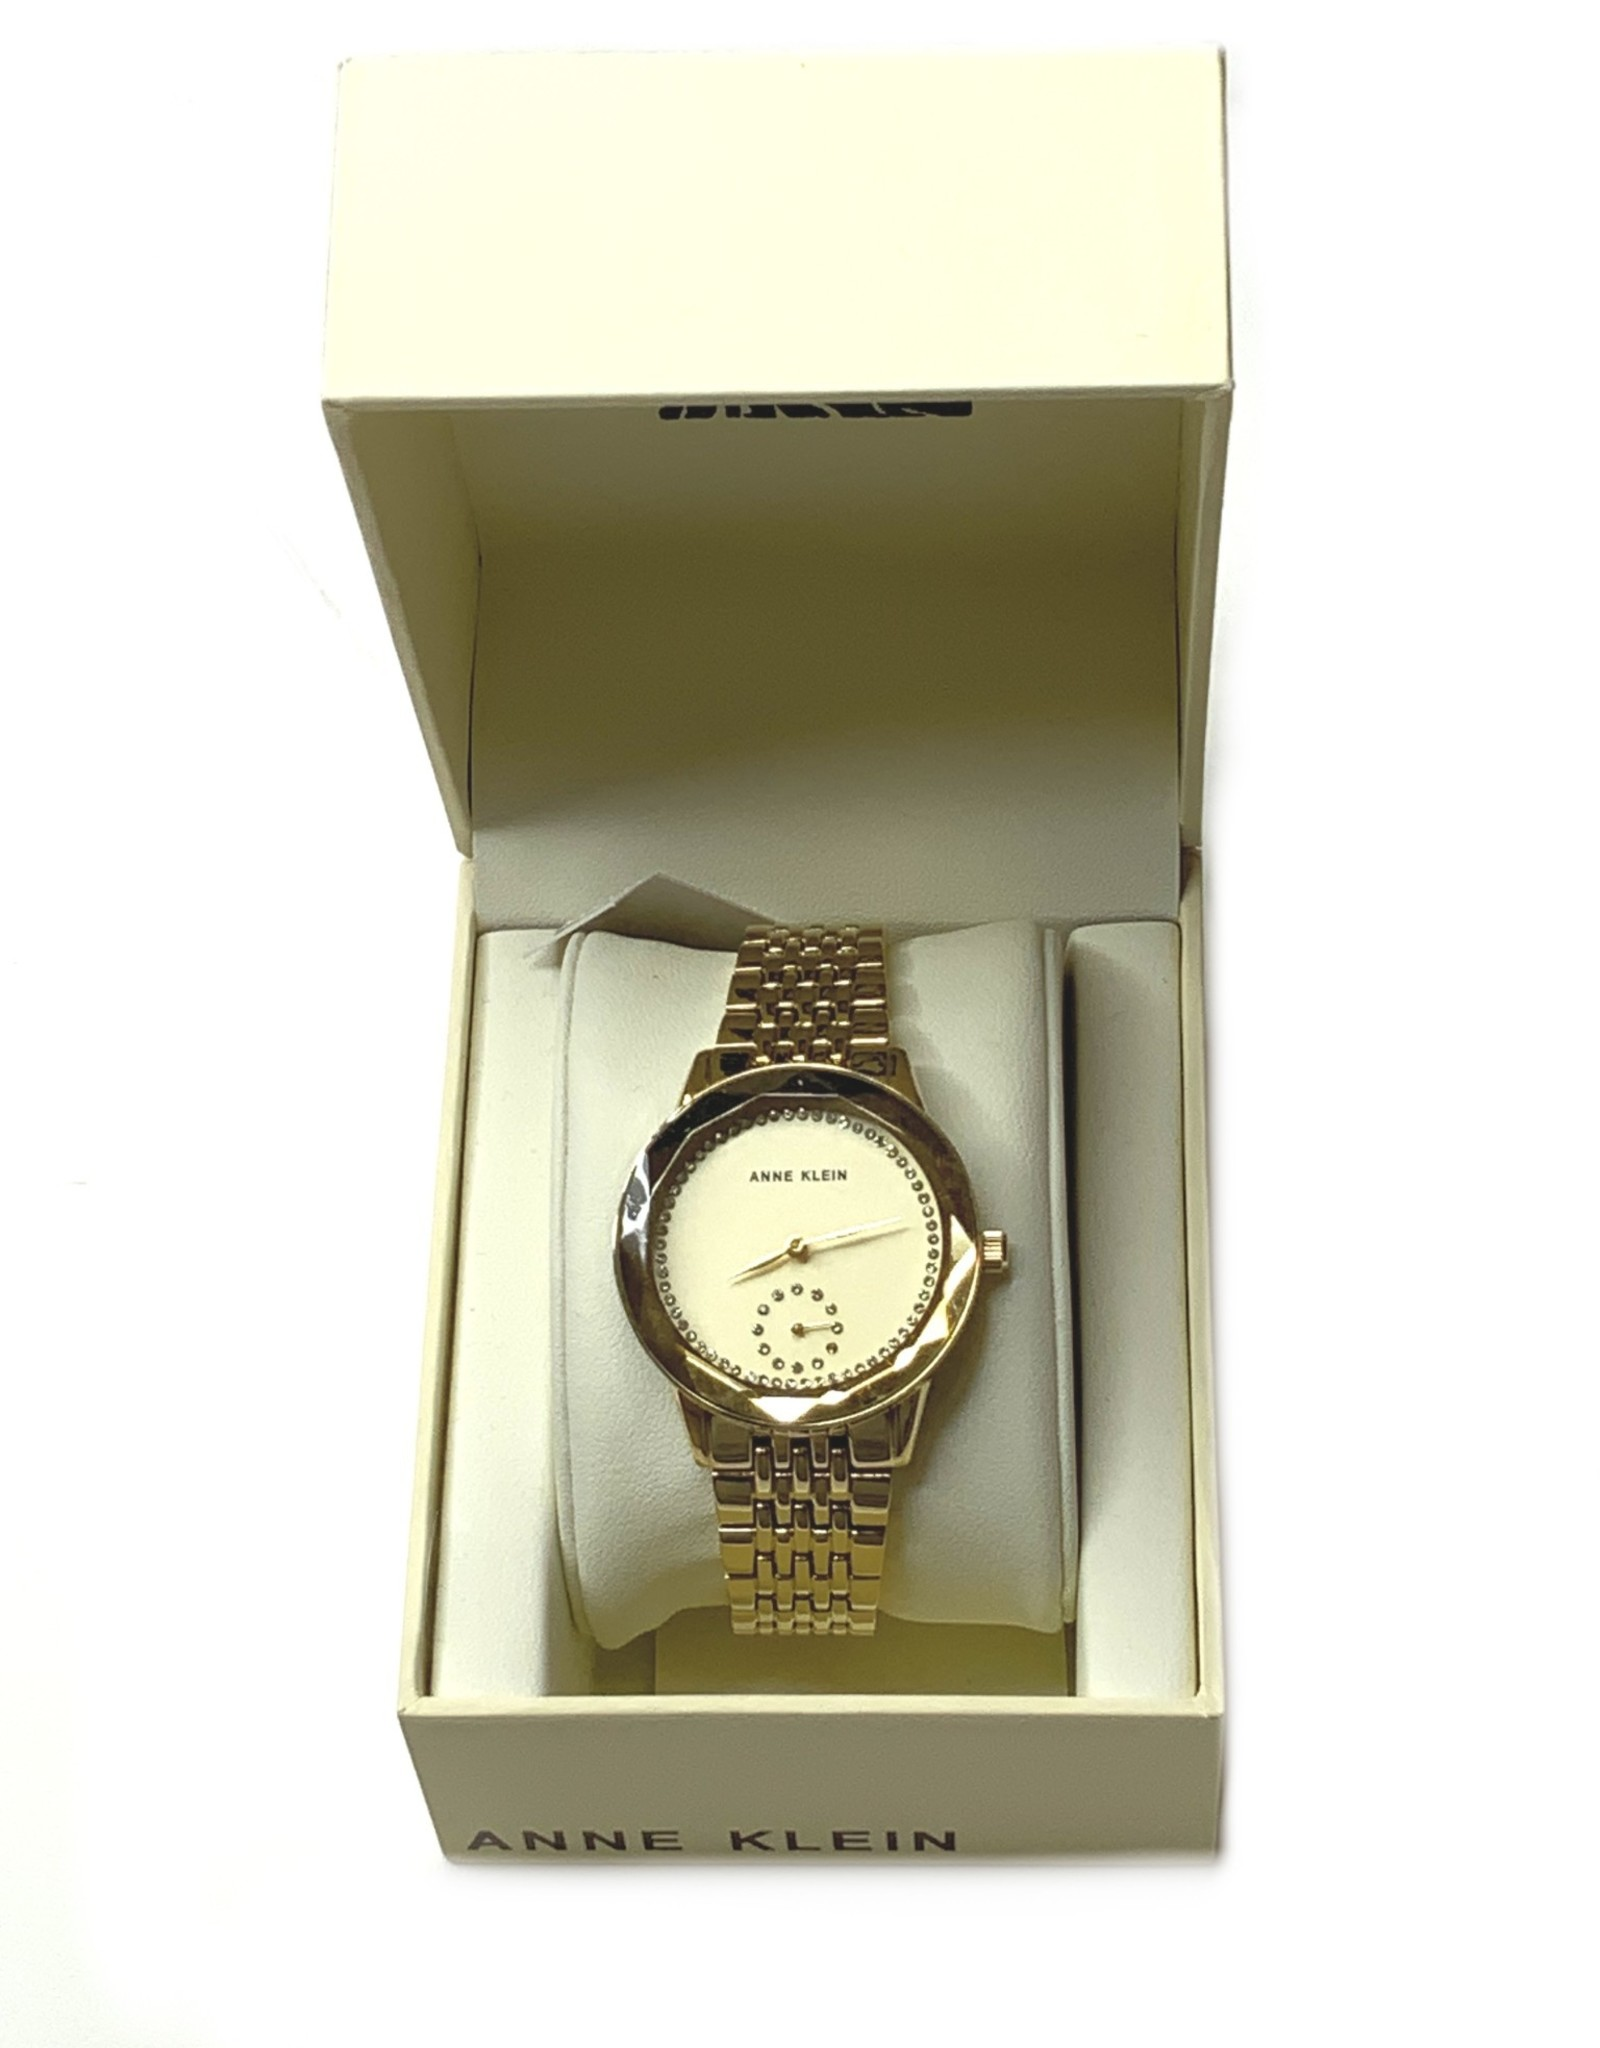 Anne Klein AK Ladies Watch Stainless Steel Yellow Gold with Hour, Minute & Second Functions w/ Swarovski Crystals